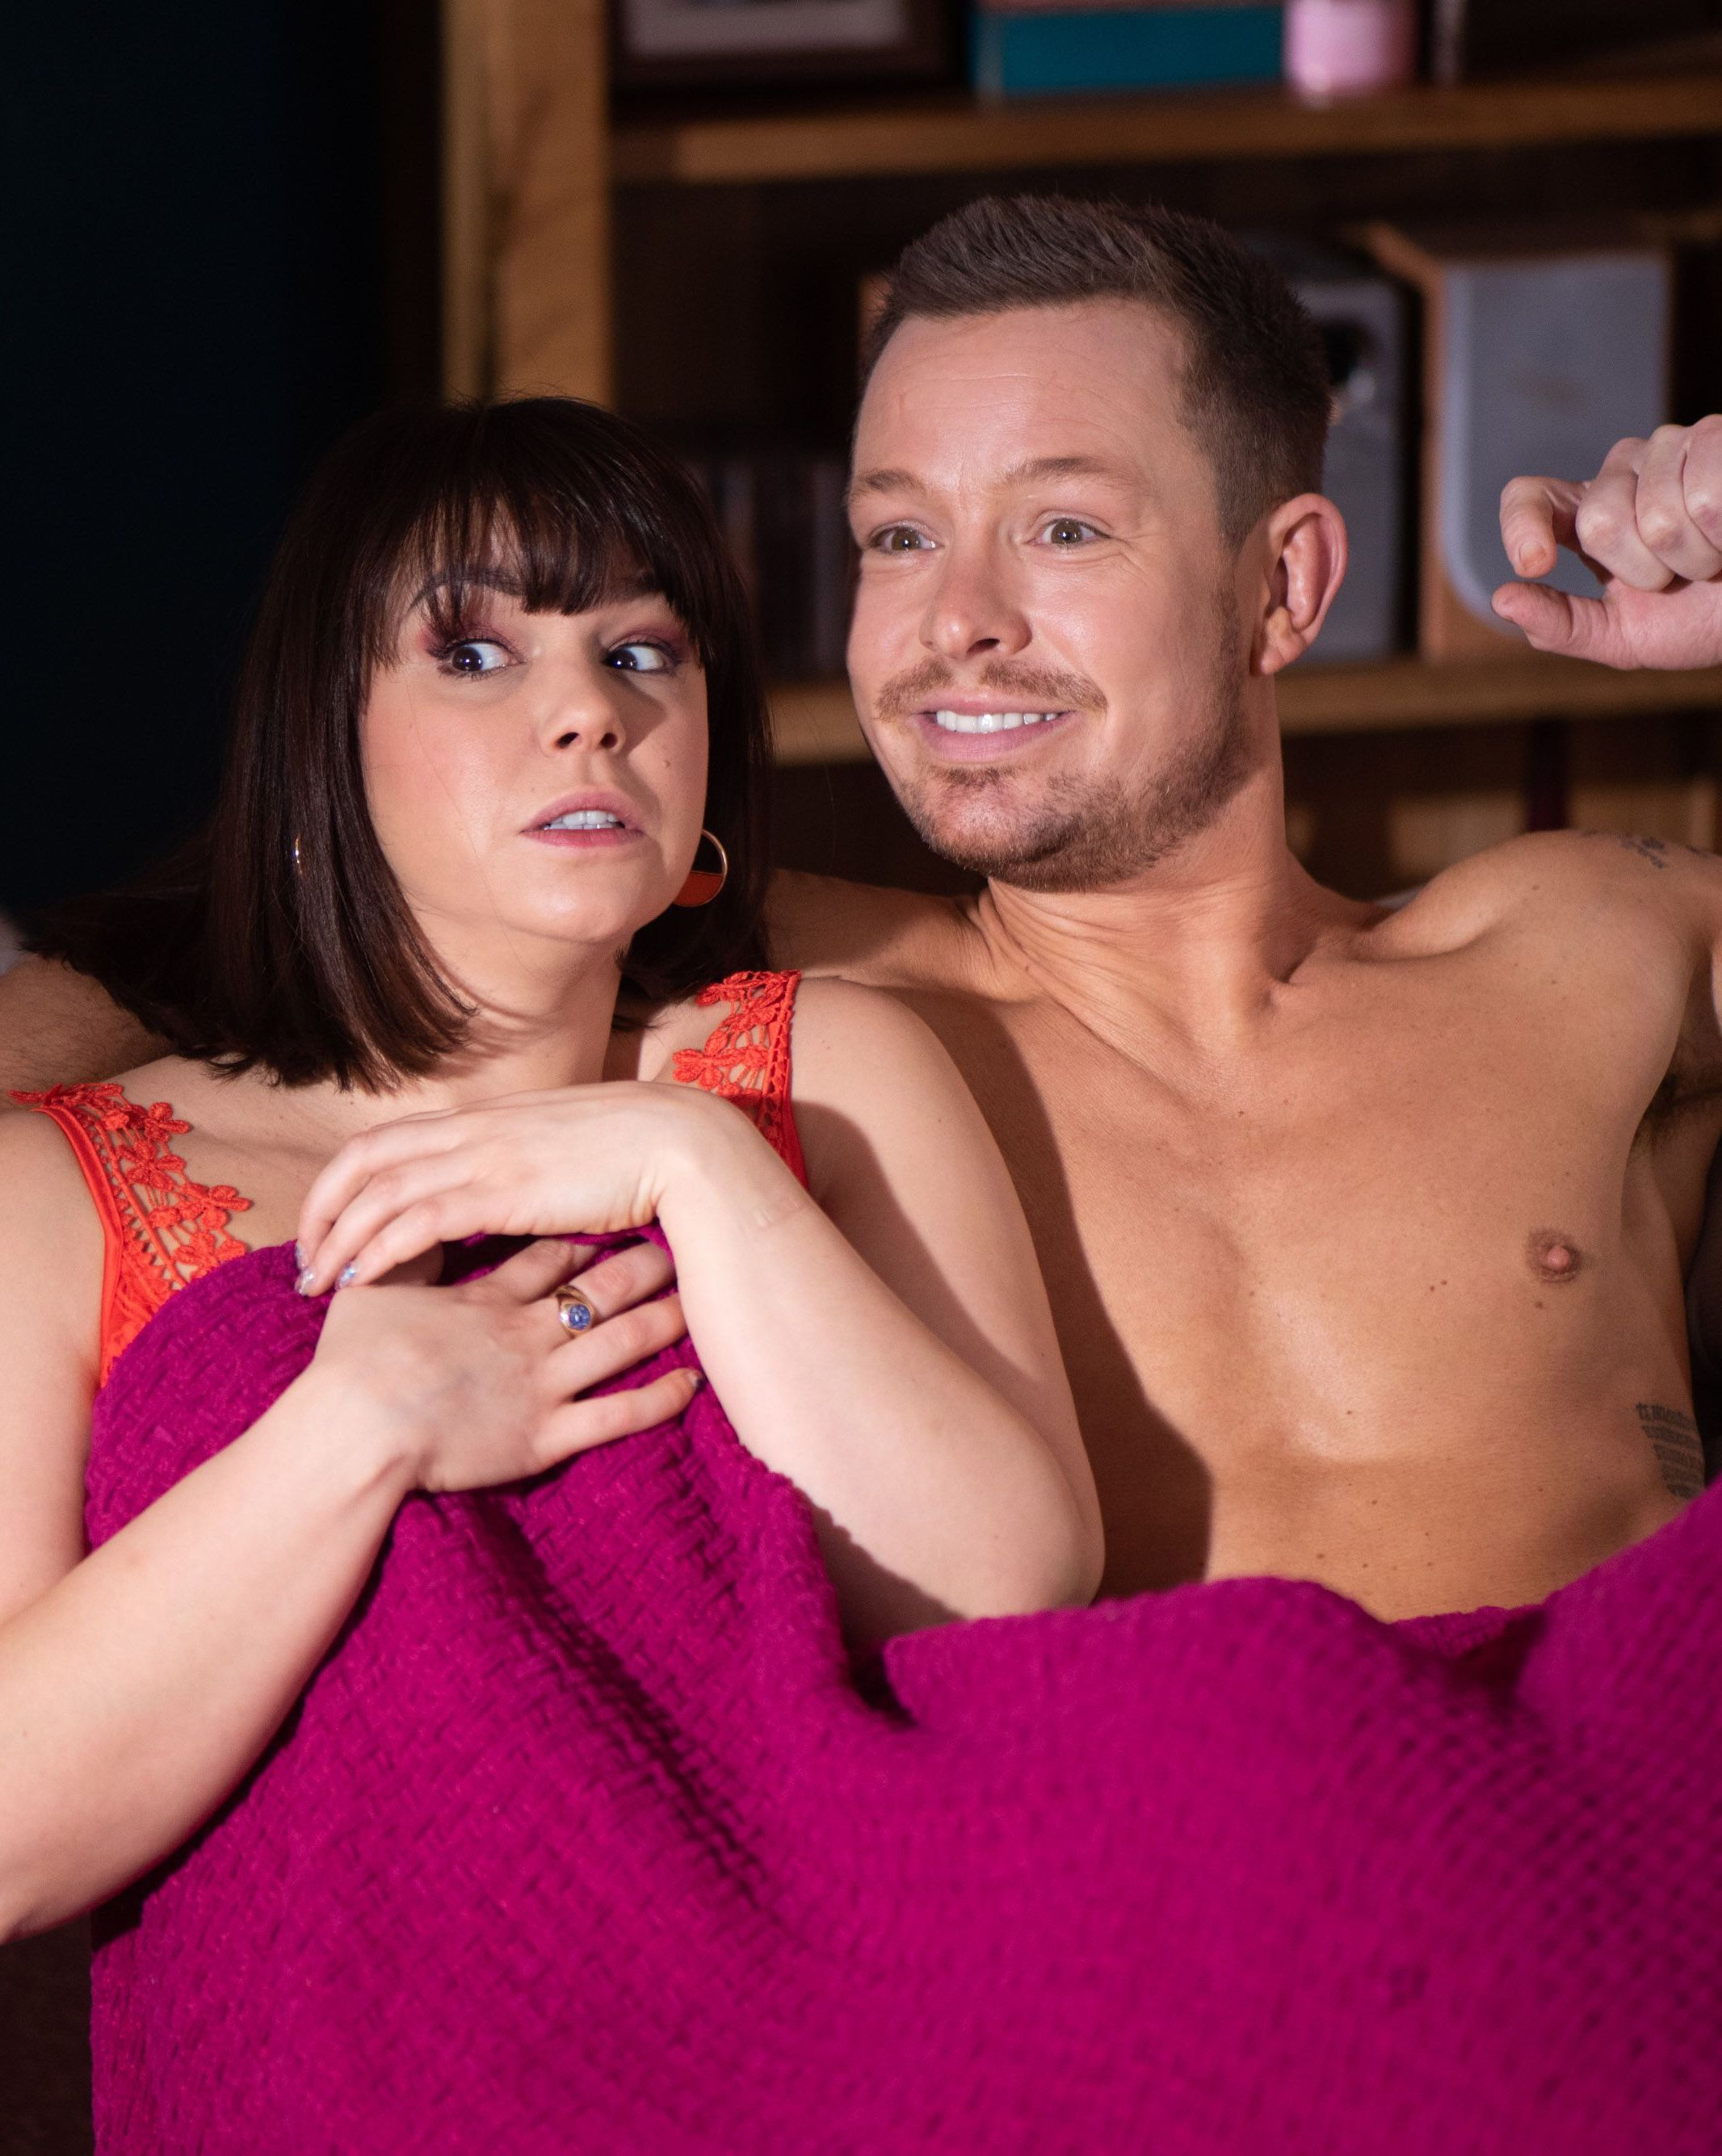 soaps hollyoaks 3 nancy kyle caught out 1 4 1547679346 10 Things You Never Knew About Hollyoaks